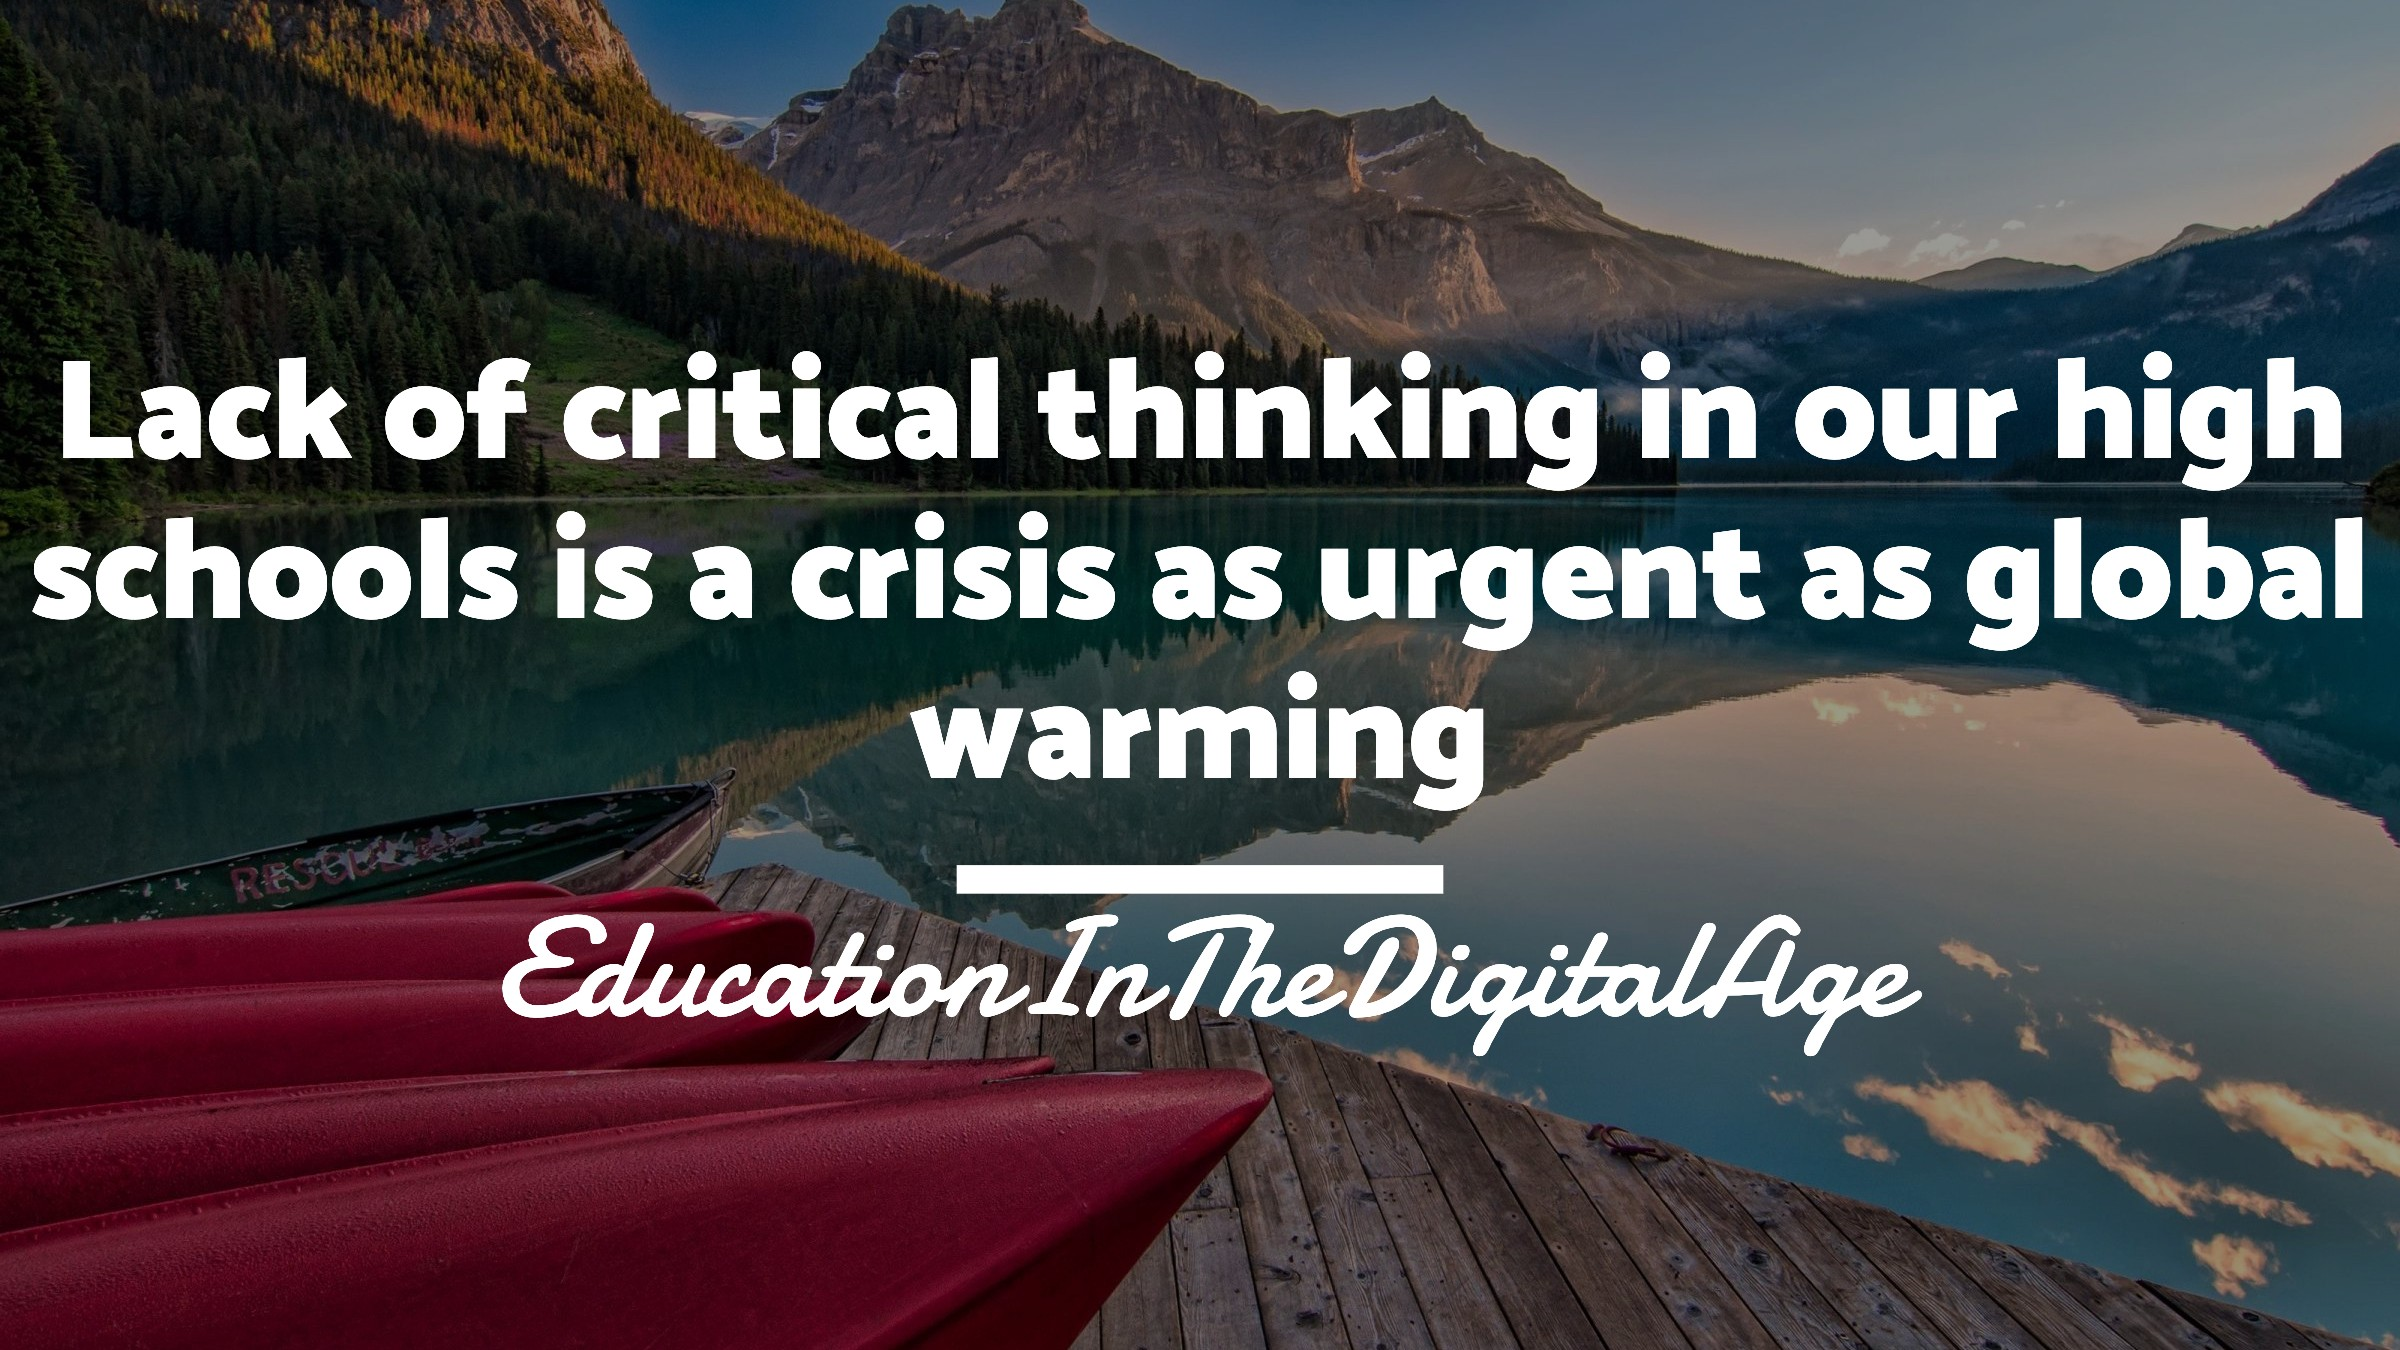 Lack of critical thinking in our high schools is a crisis as urgent as global warming. — EducationInTheDigitalAge.org